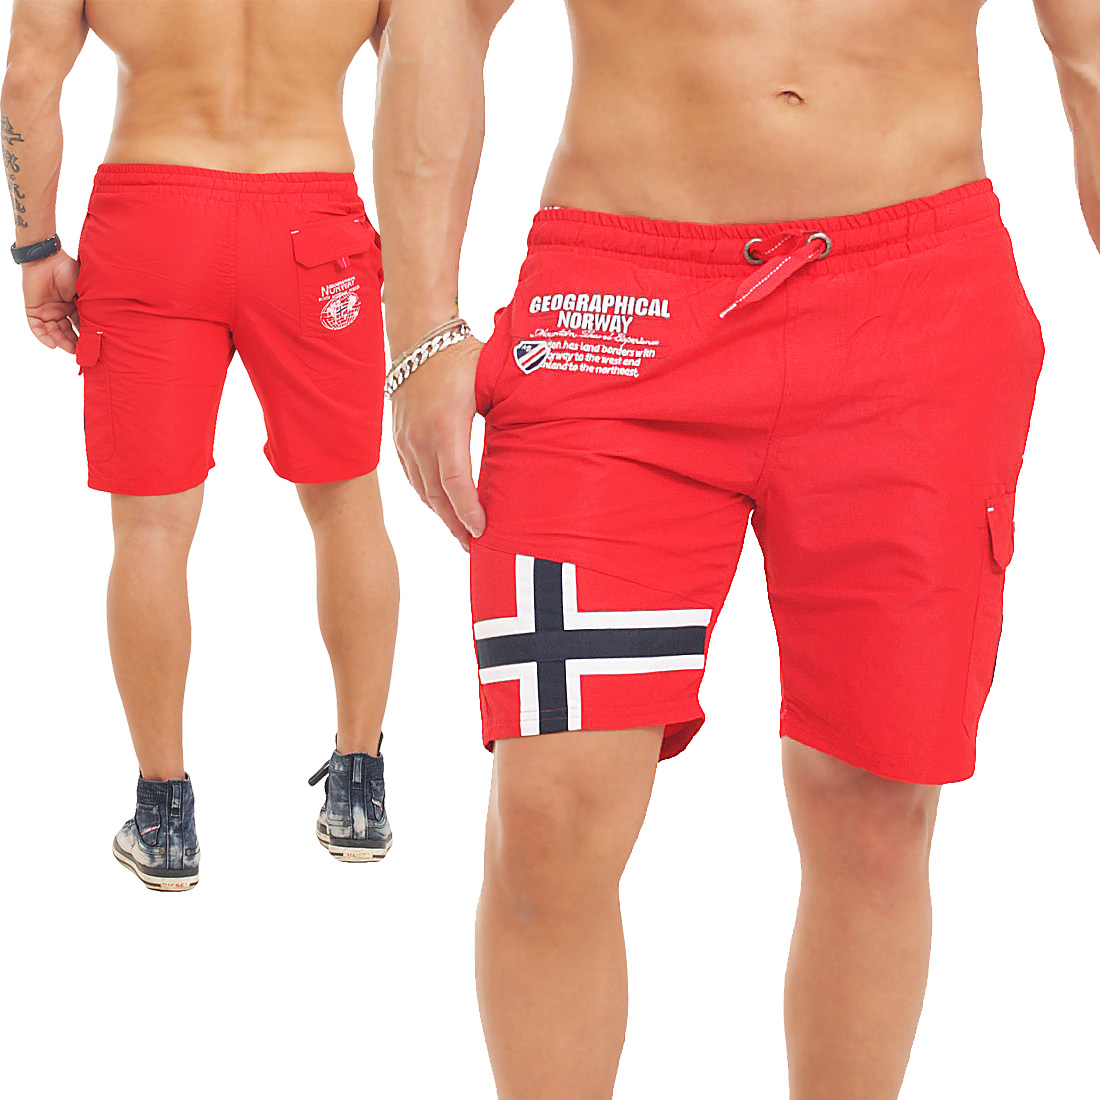 geographical norway badehose badeshort short quafto shorts. Black Bedroom Furniture Sets. Home Design Ideas